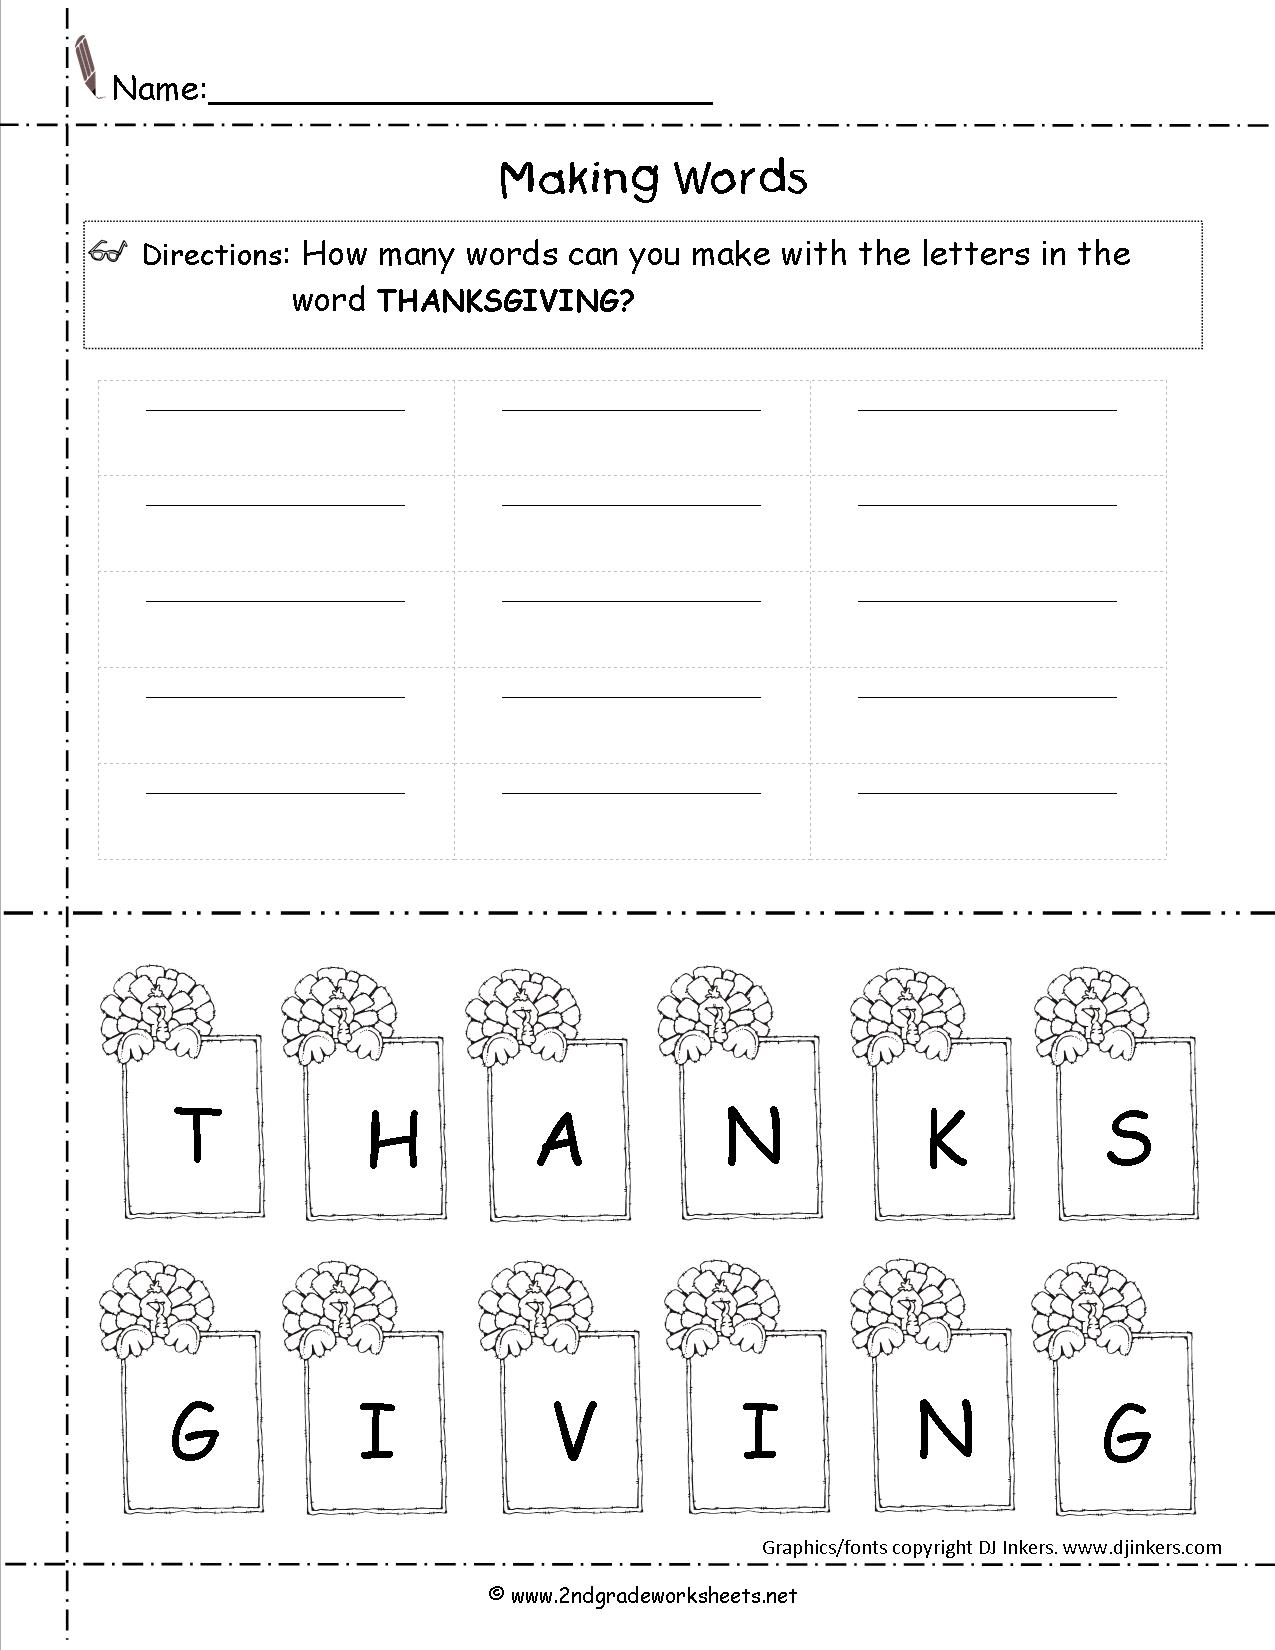 17 Best Images Of Making Choices Worksheets 1st Grade